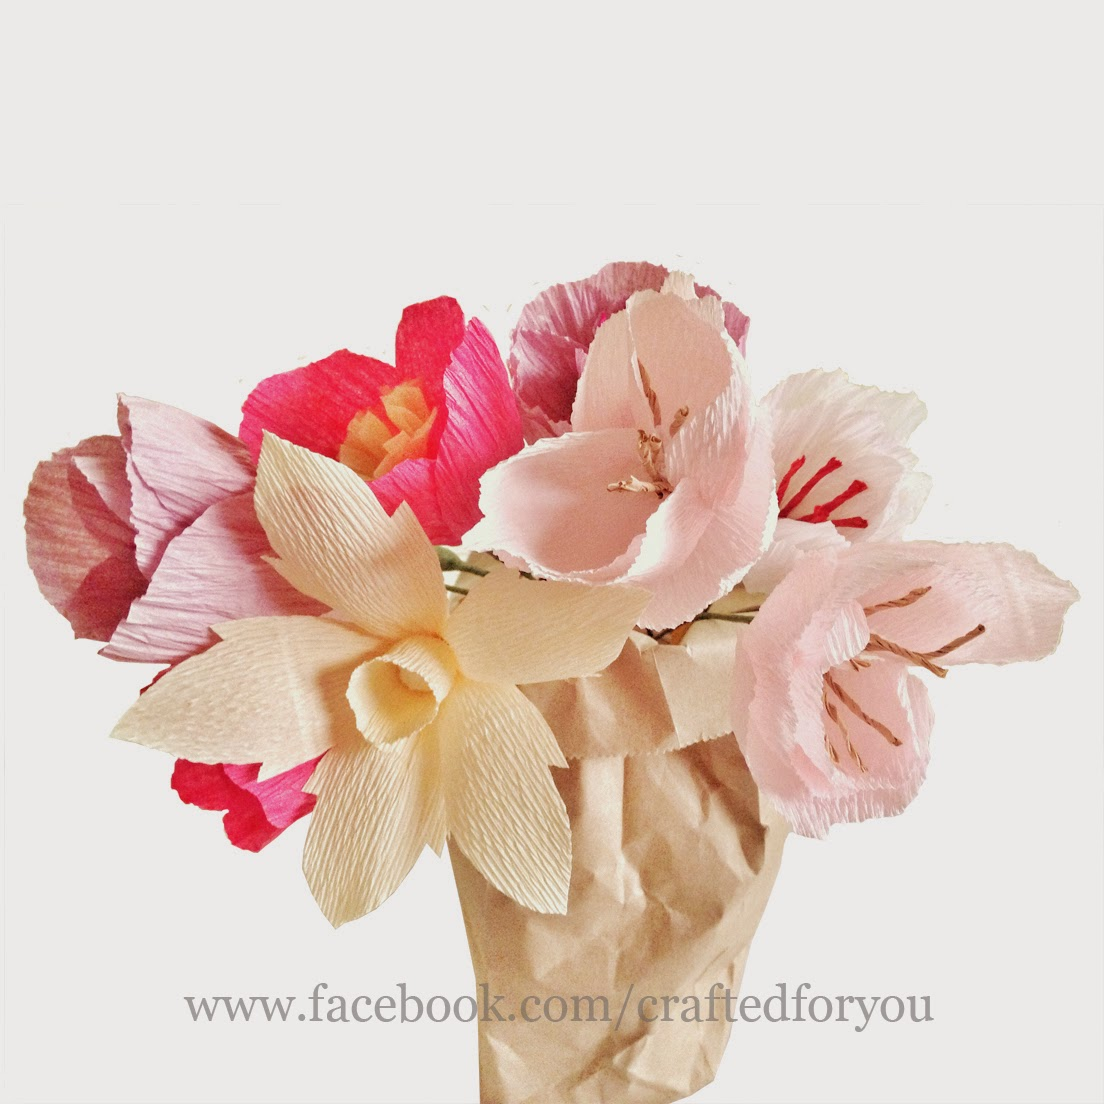 Forty Weeks Craftsdiy Paper Flowers Workshop With Gourdos